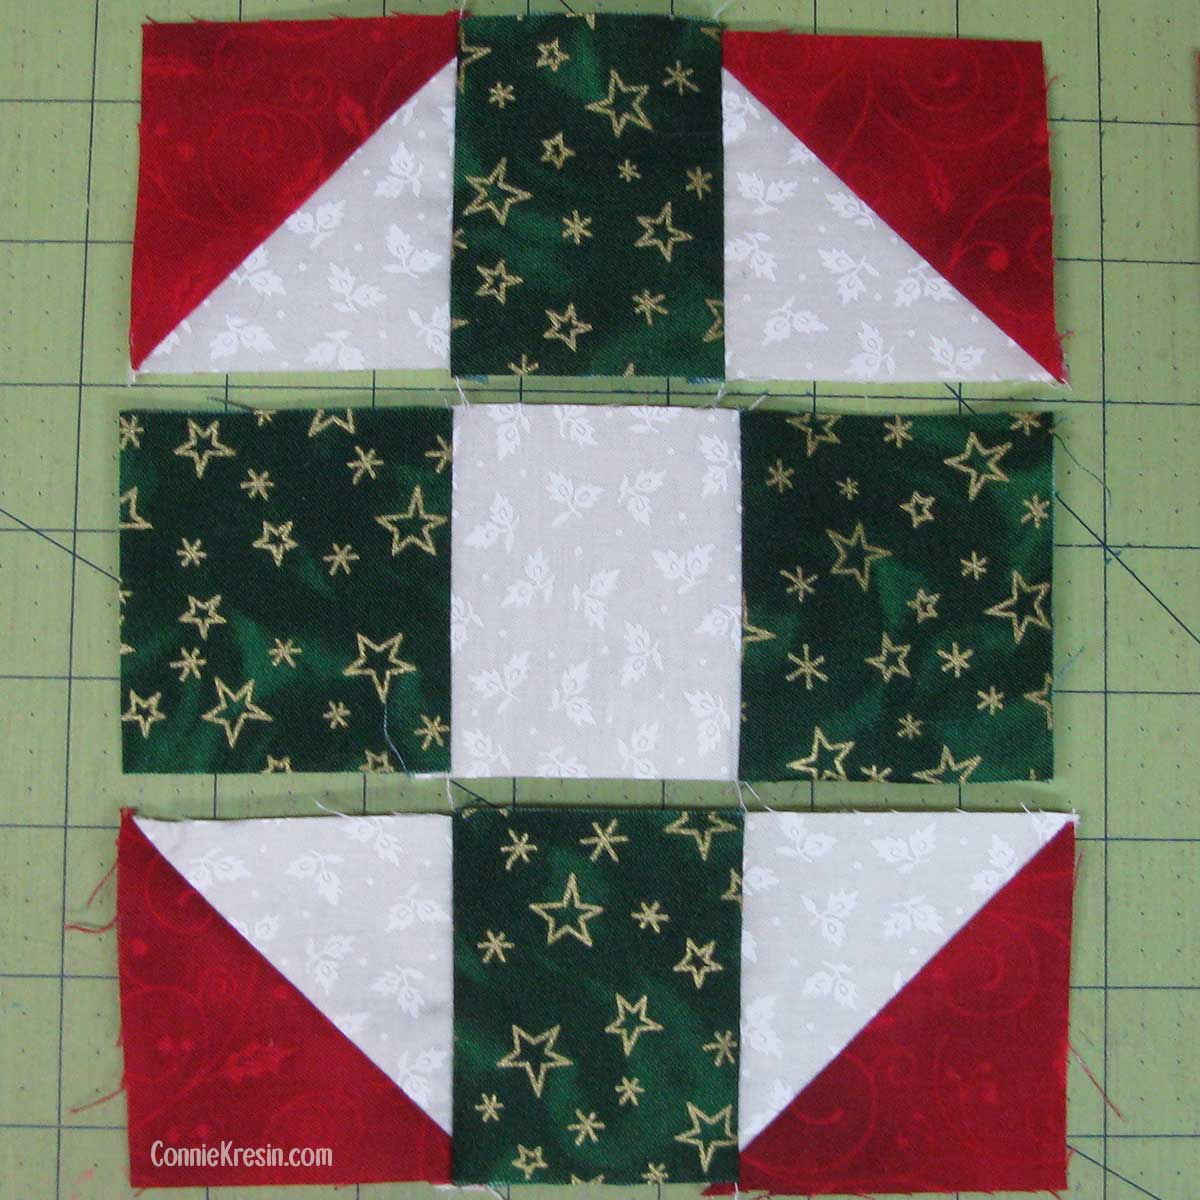 Piece the rows of the quilted Christmas mug rug together